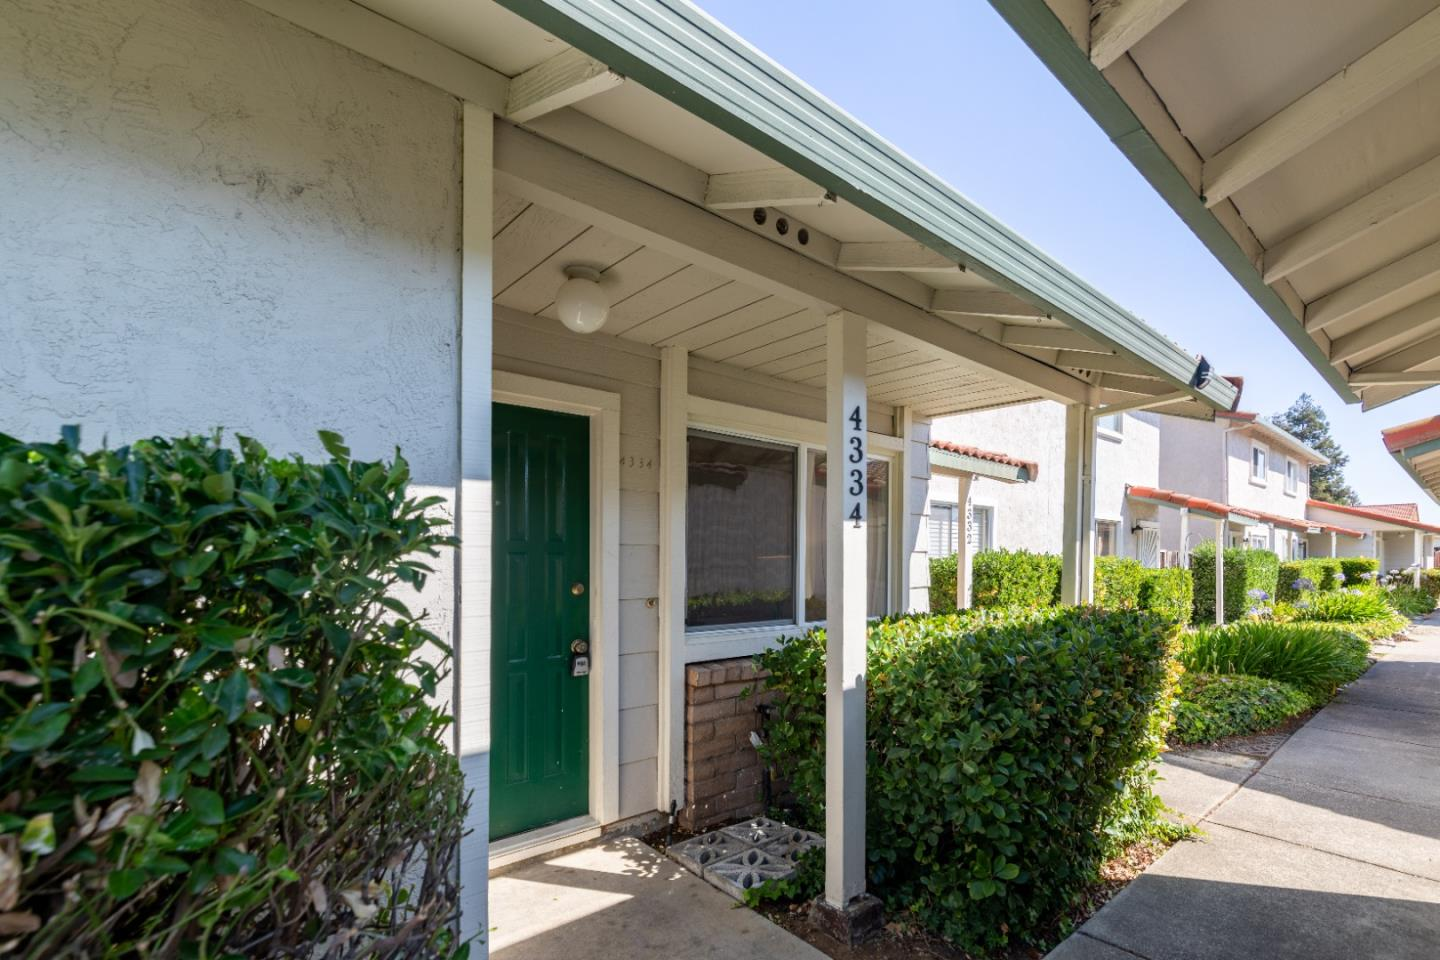 Sunny and bright - this 3bd/2ba townhome located in a highly desirable neighborhood in Concord is not one to miss! The large property features an open format layout with large windows that let in an abundance of natural light. The large living space flows effortlessly into the kitchen and the dining space, creating the perfect place to entertain family and friends or for a cozy night in. The kitchen comes equipped with plenty of cabinet space, a gas range stove, and stainless steel appliances. The owners suite is large with sizeable closets and has an attached bathroom with vanity mirror and lighting. Additional two bedrooms with large windows and a full bathroom with stand in shower. Fresh interior paint and covered one car parking included